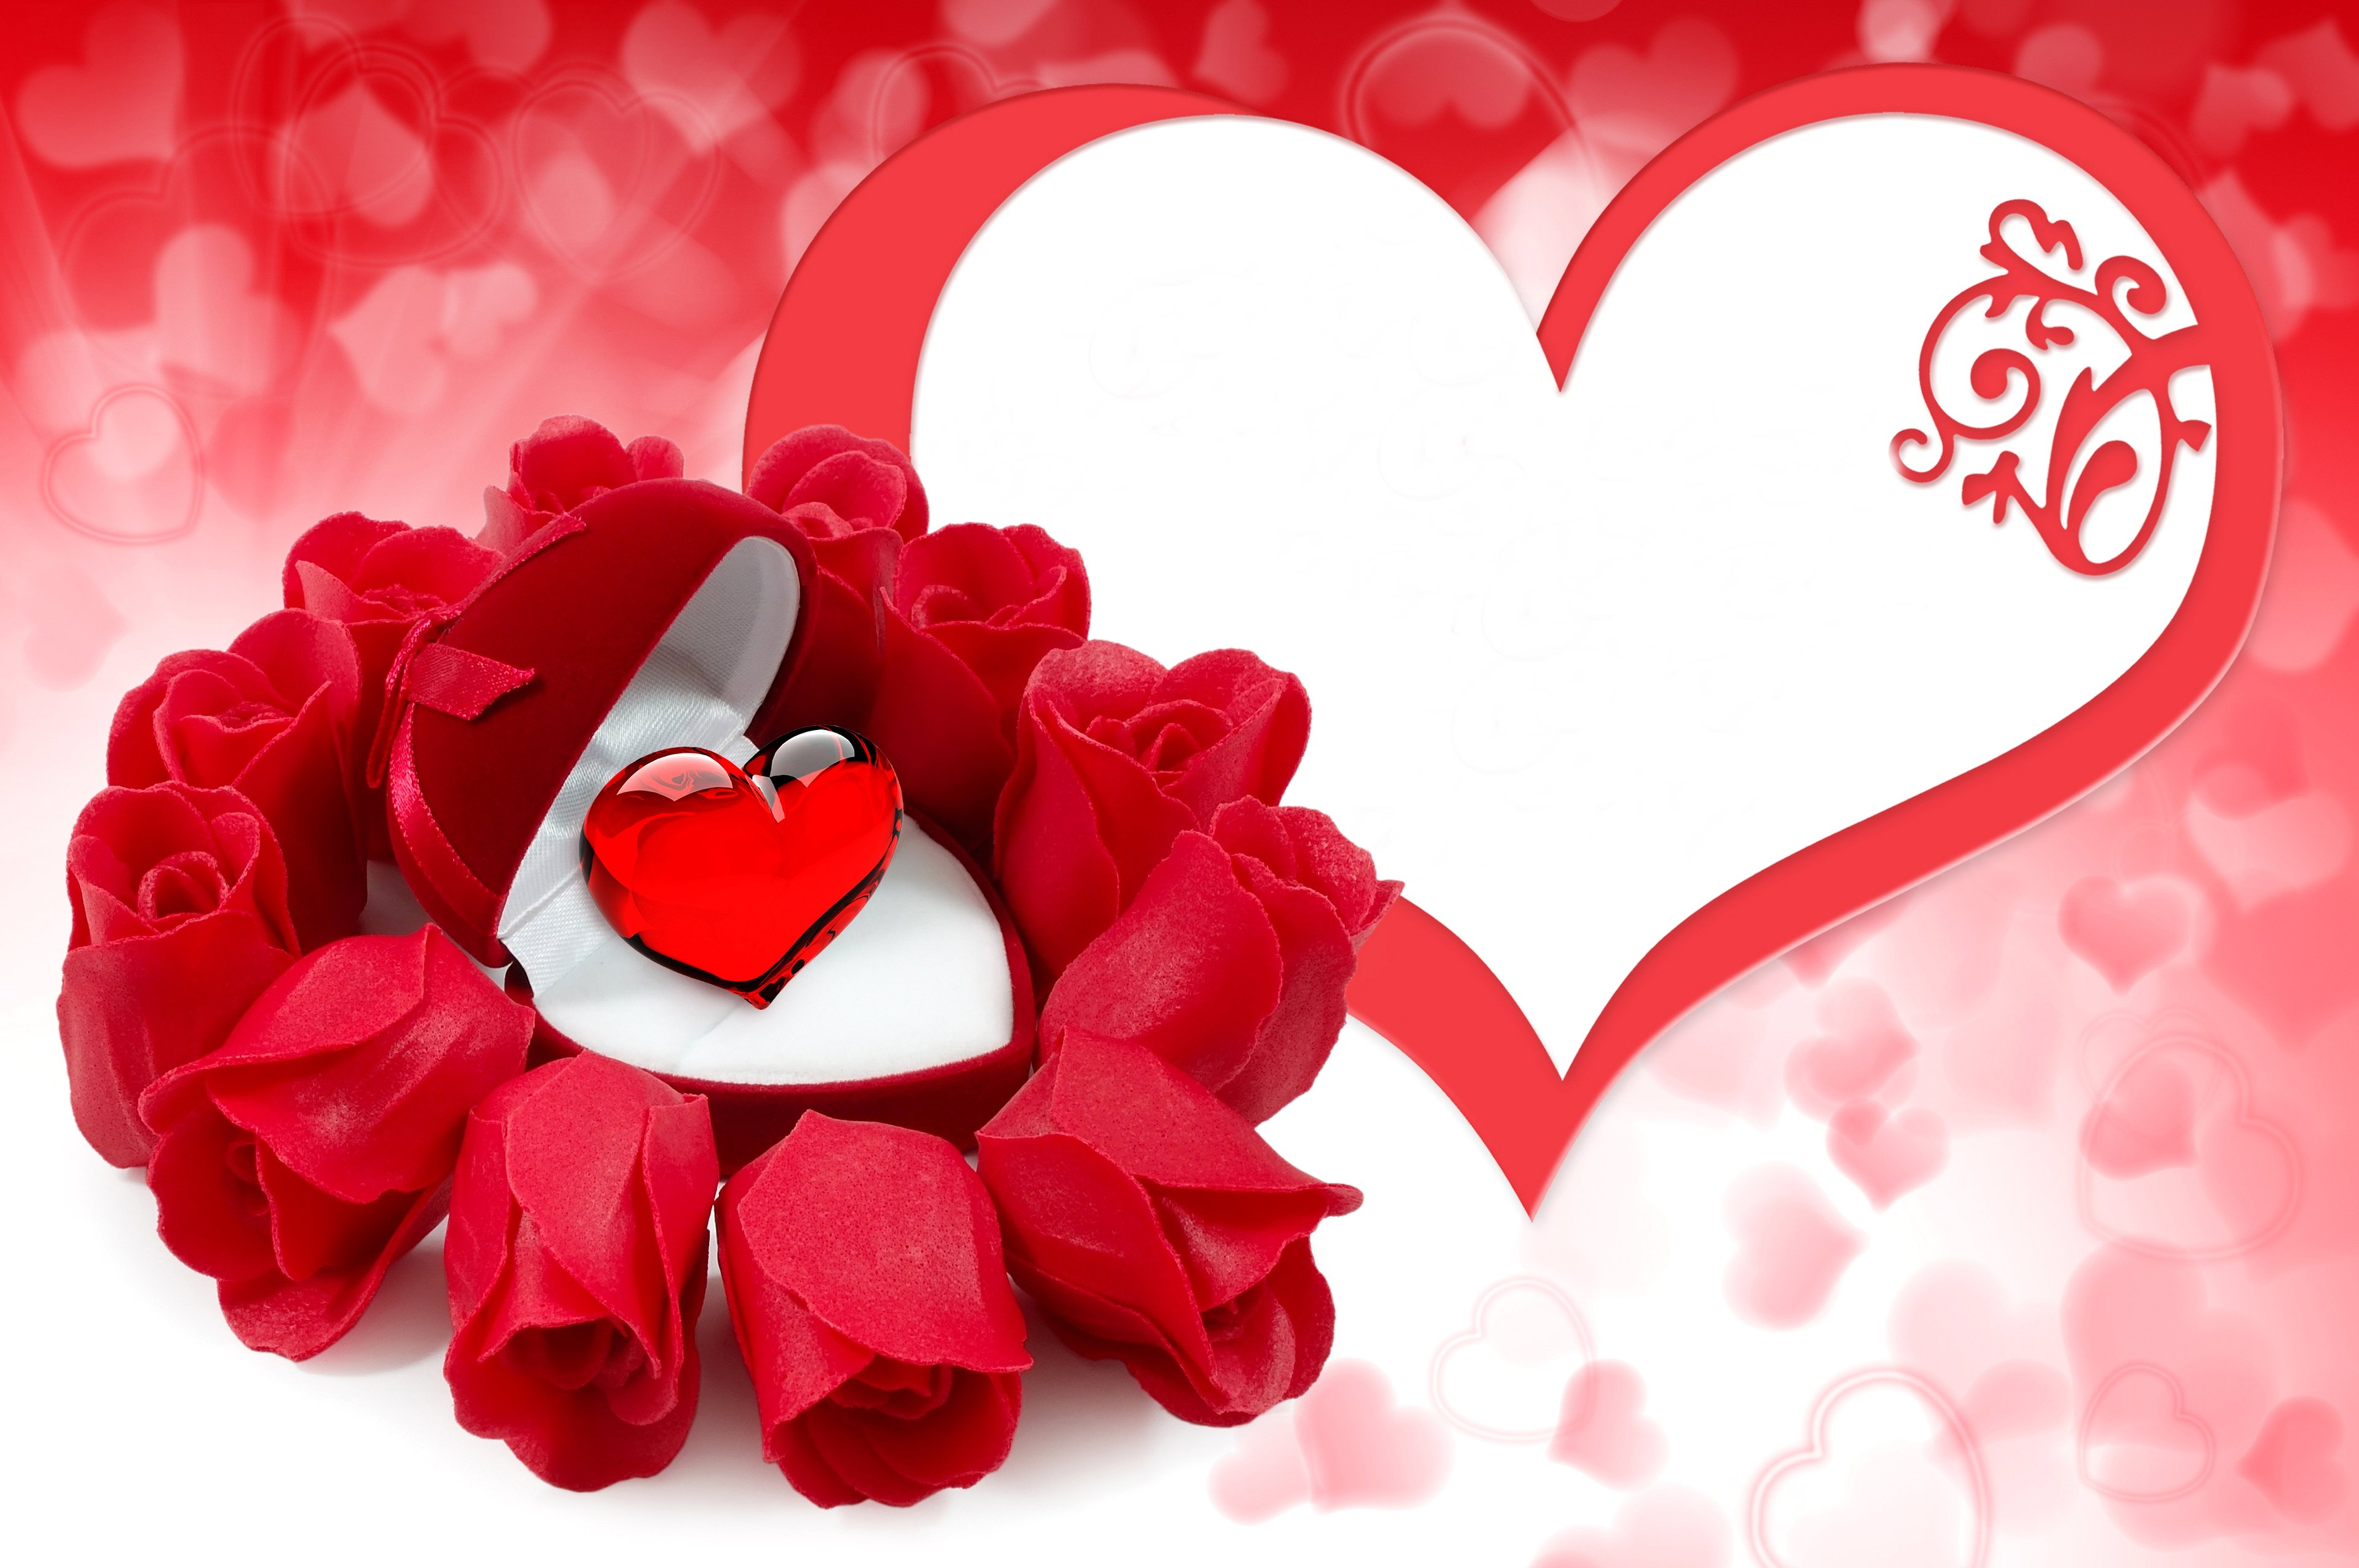 Bouquet - hearts - couple - Flowers - For - gift - life - love - red - romance - rose wallpaper | 3840x2553 | 622535 | WallpaperUP